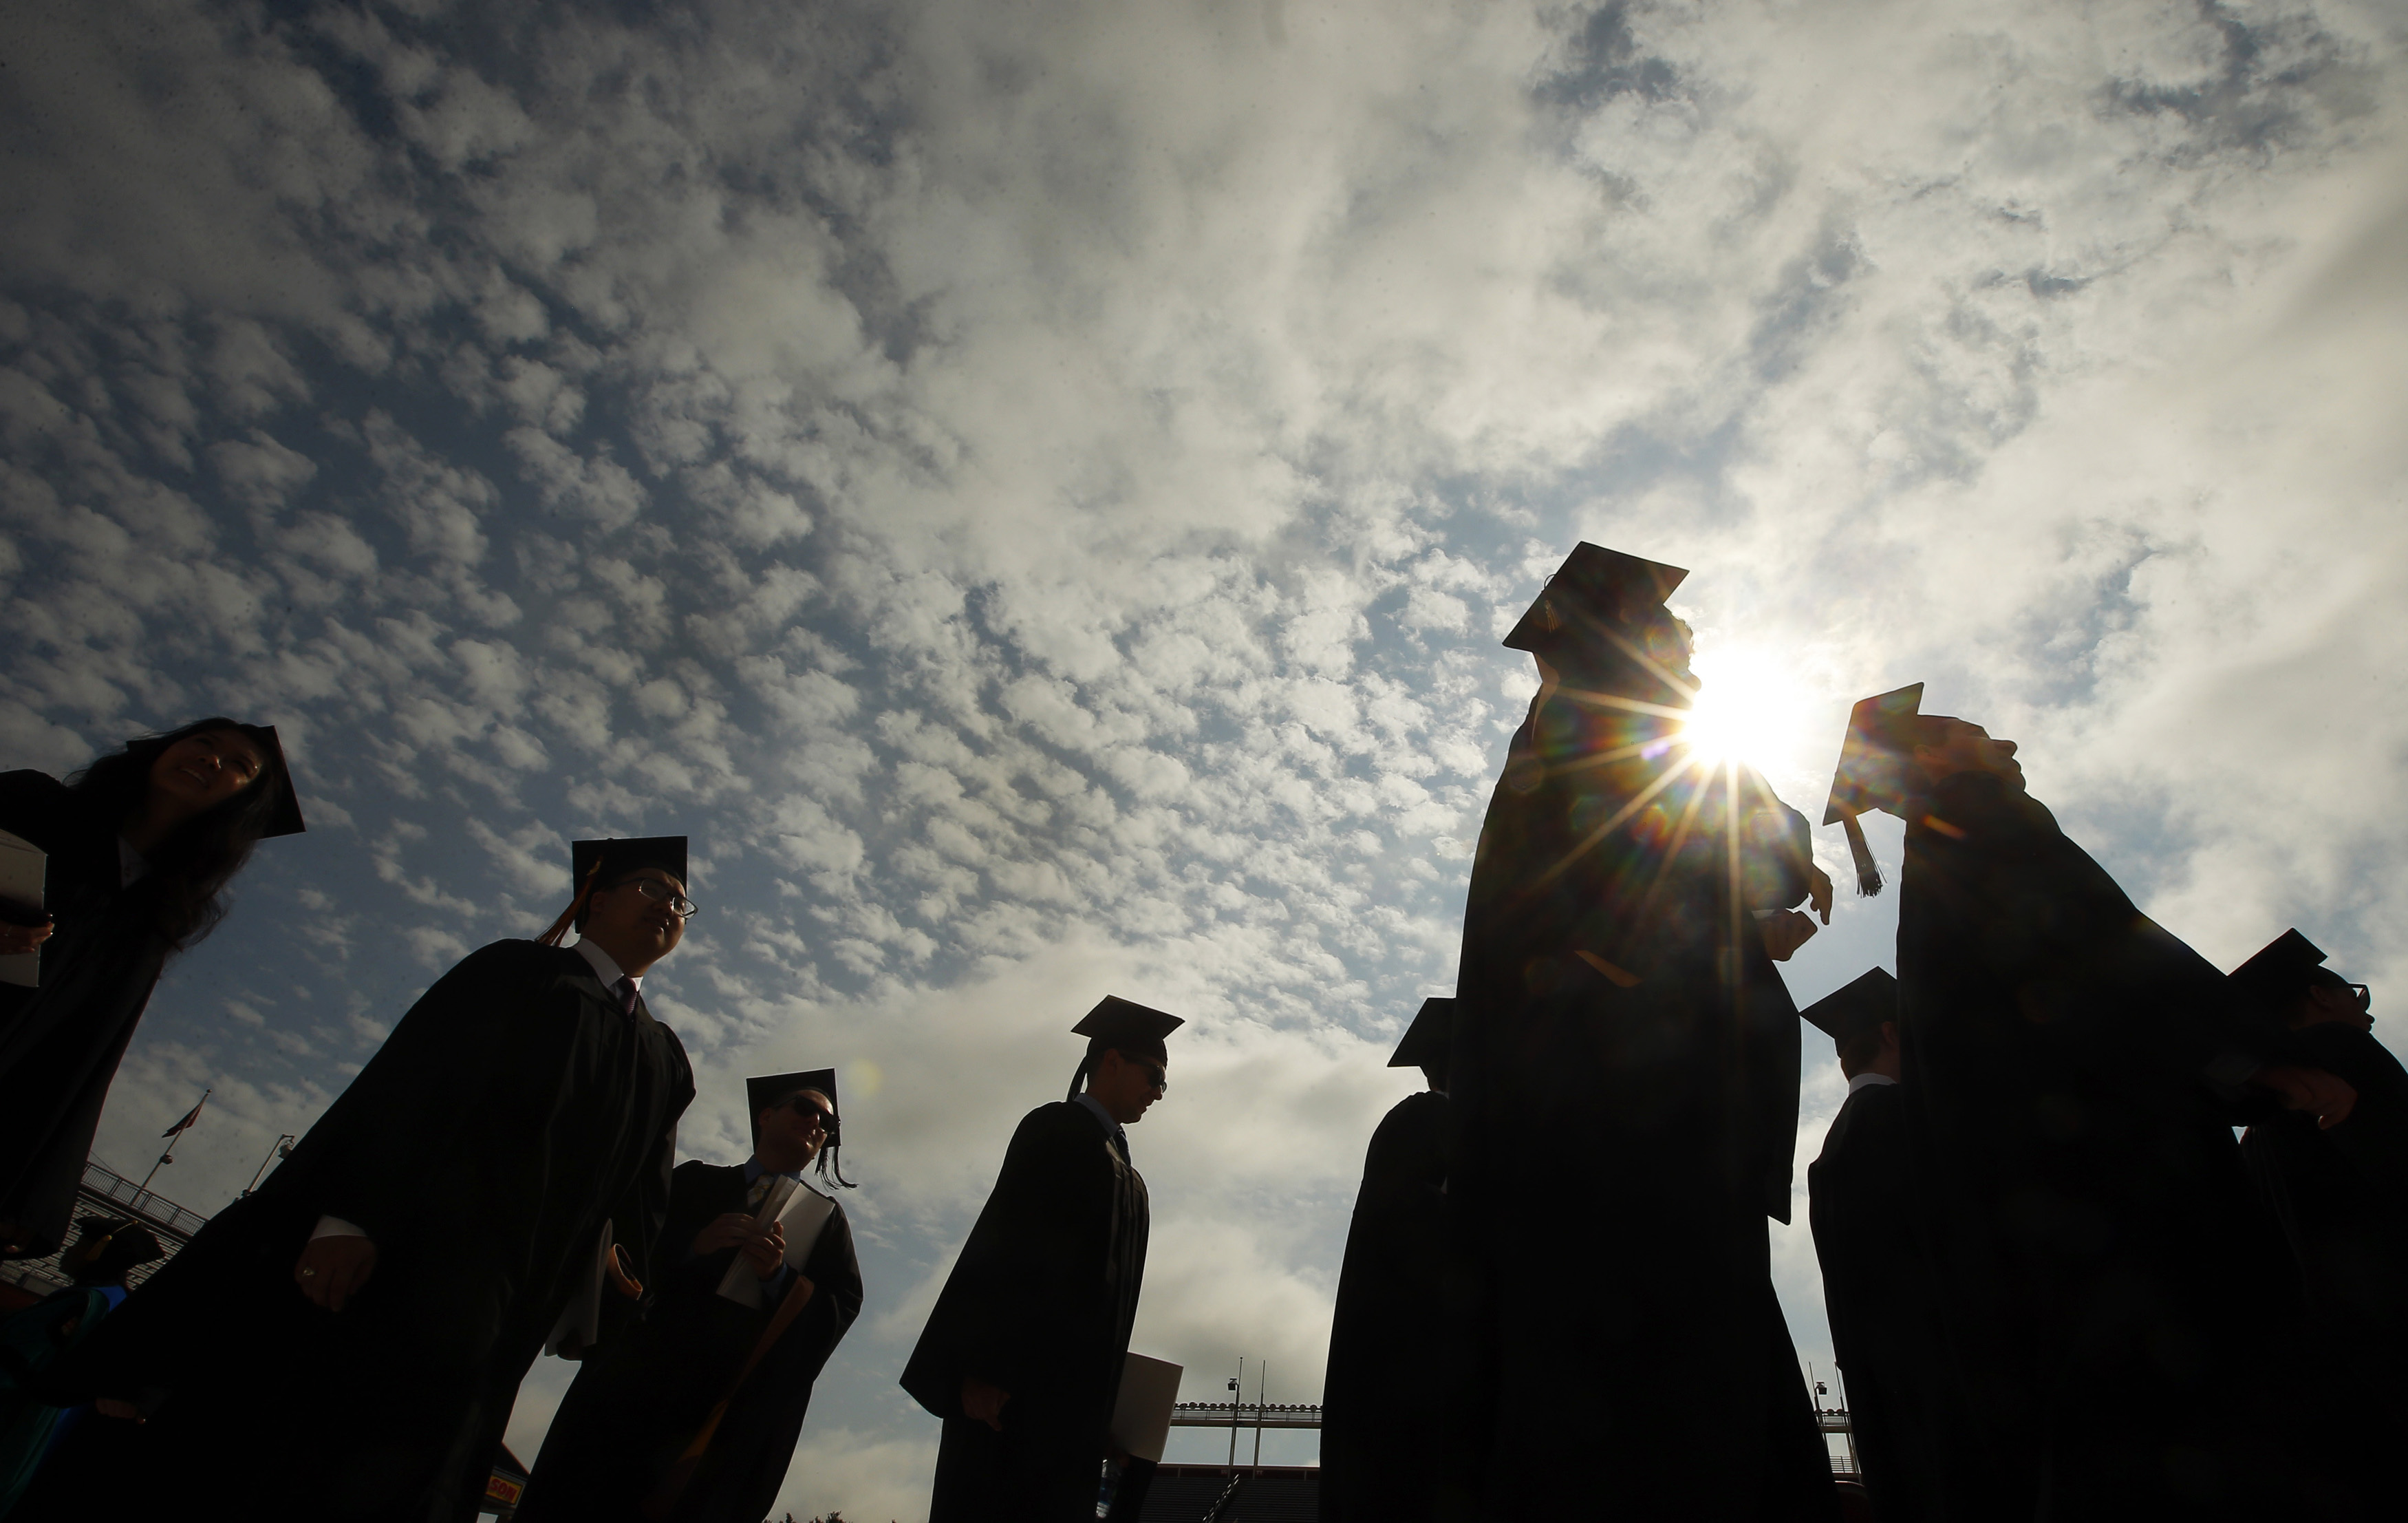 Improving community college completion rates by addressing